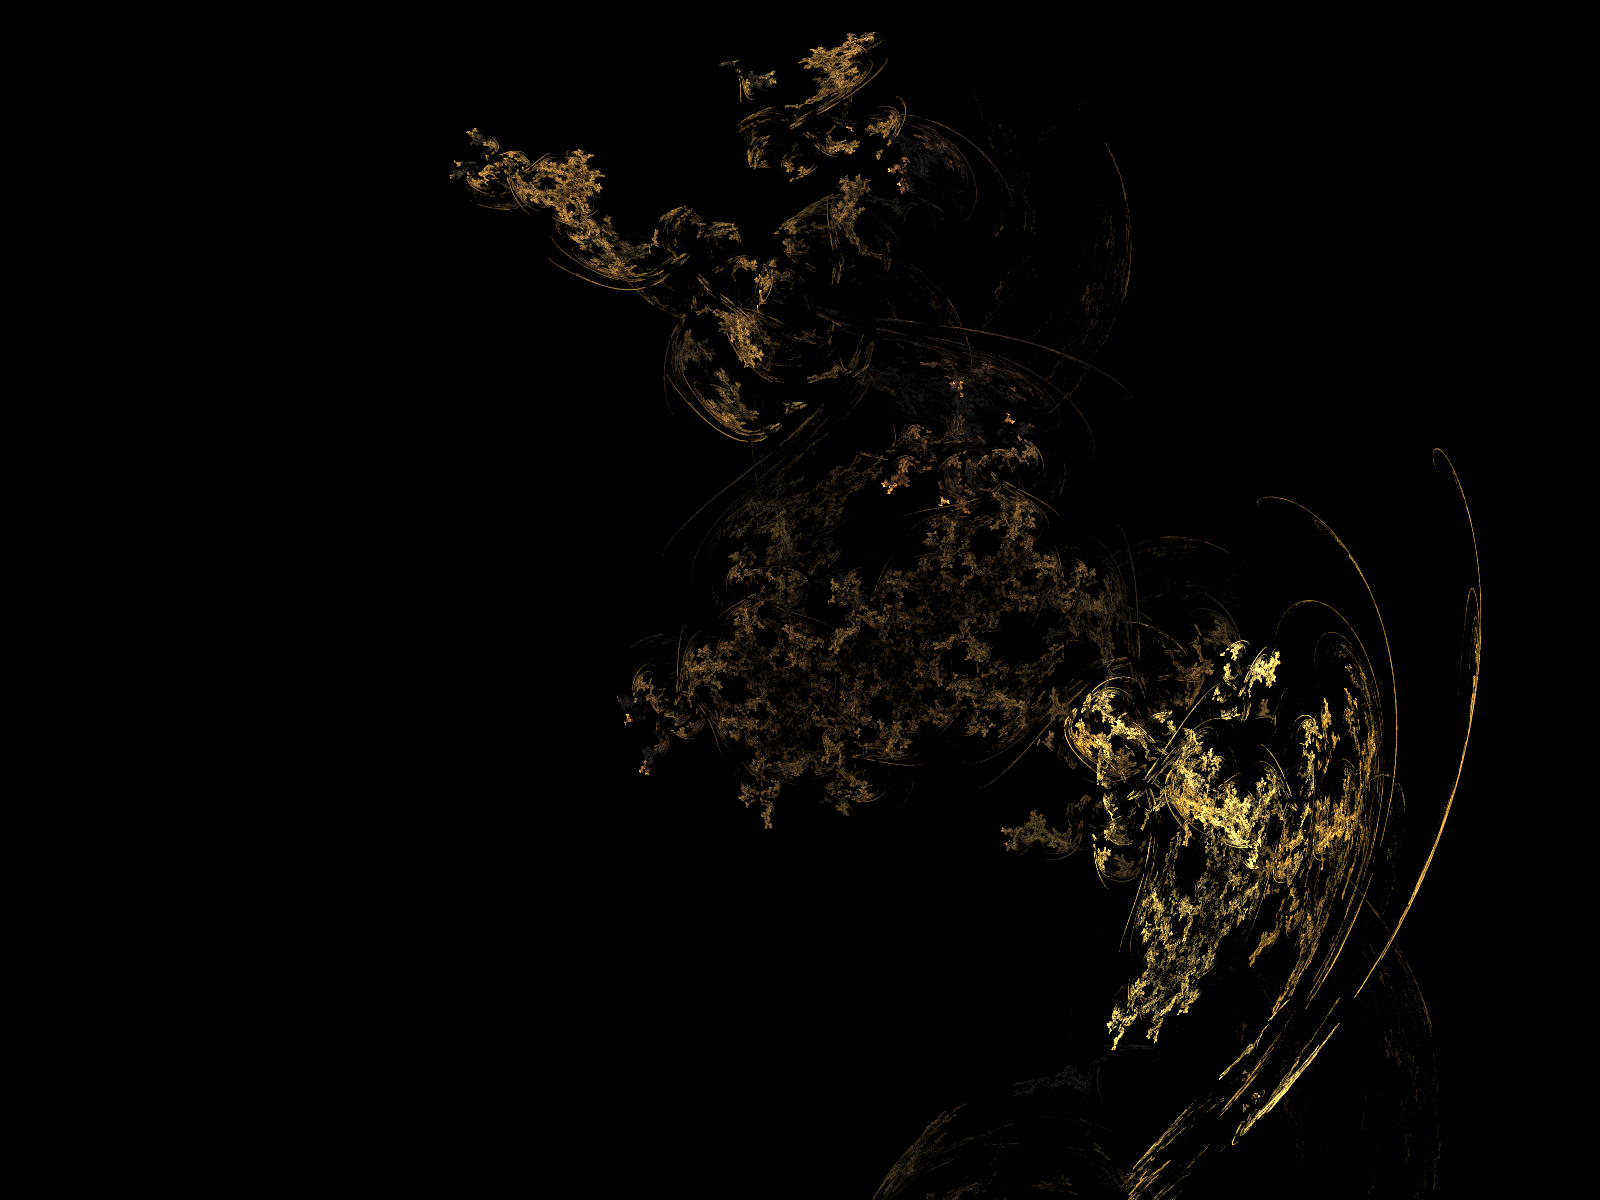 Black and gold desktop wallpaper wallpapersafari - Gold desktop background ...